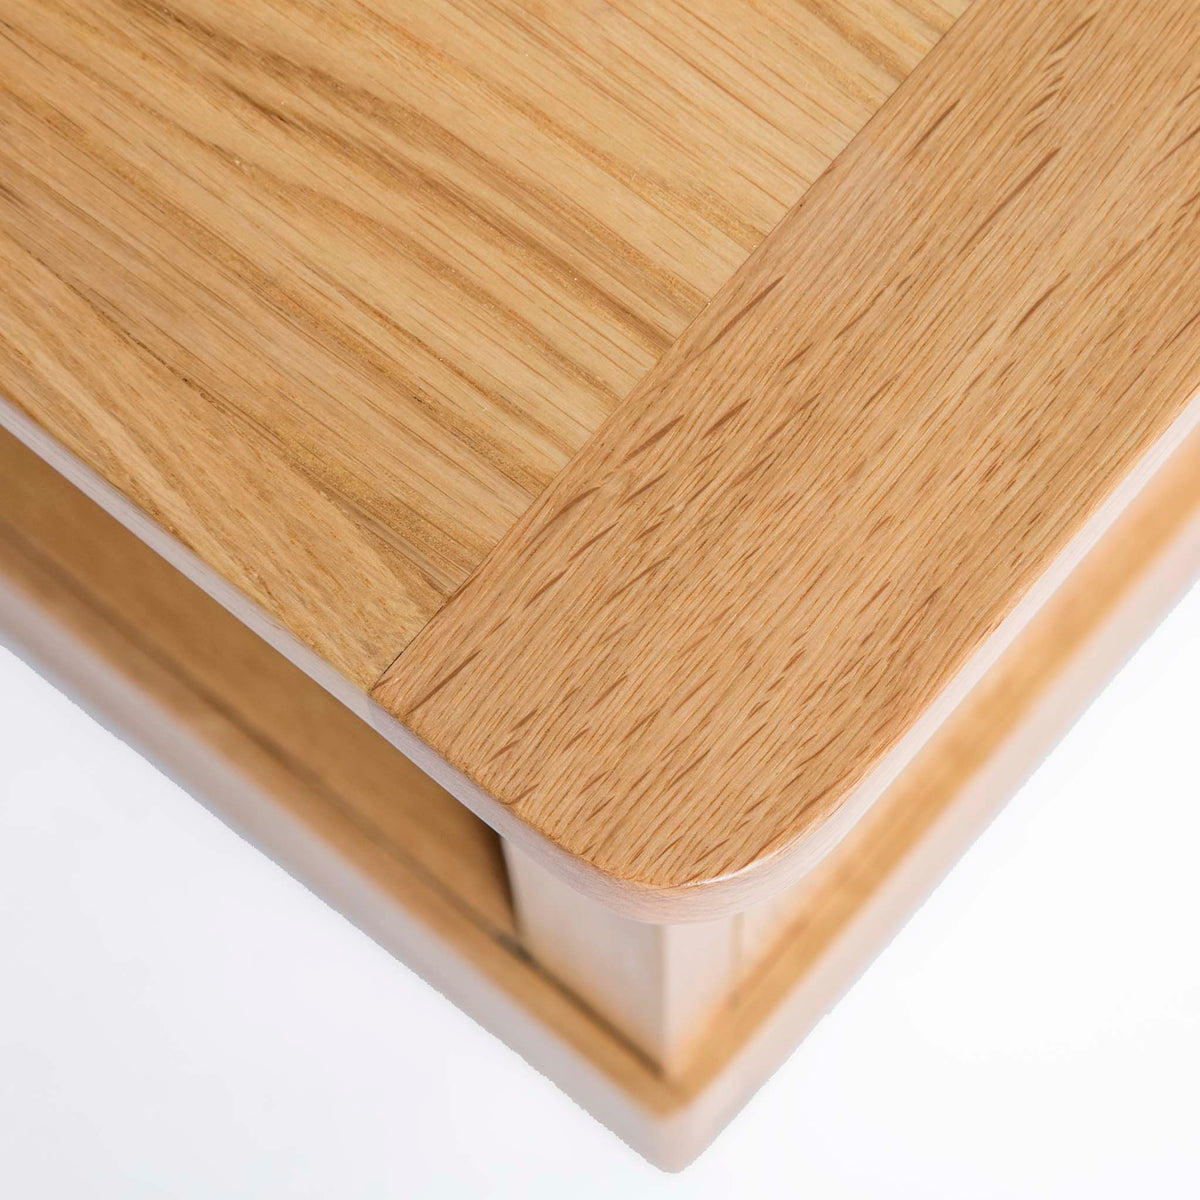 Hampshire Oak Coffee Table - Close up of corner of table top